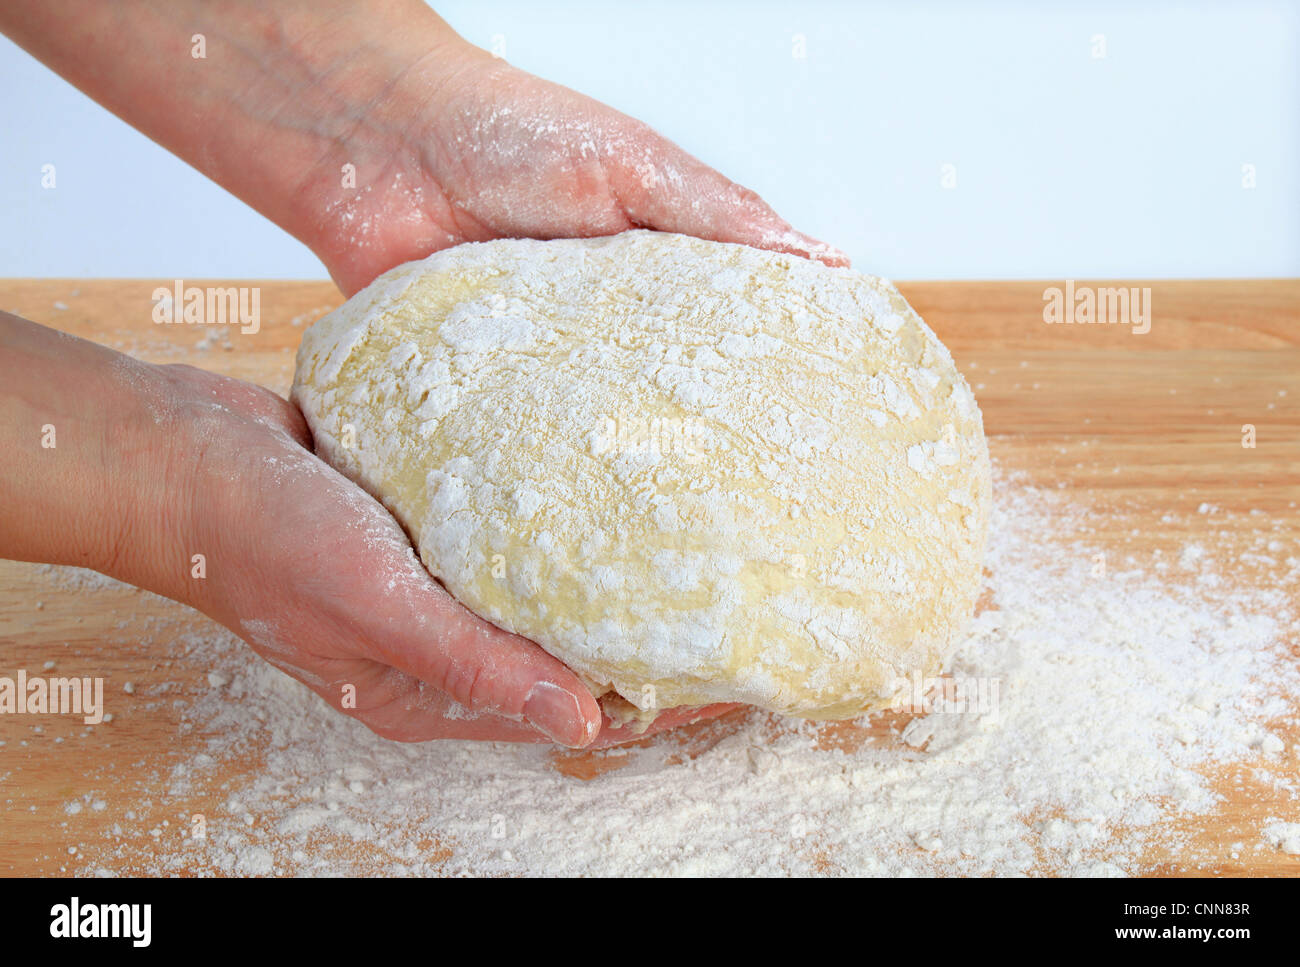 Cook making yeast pizza dough - Stock Image